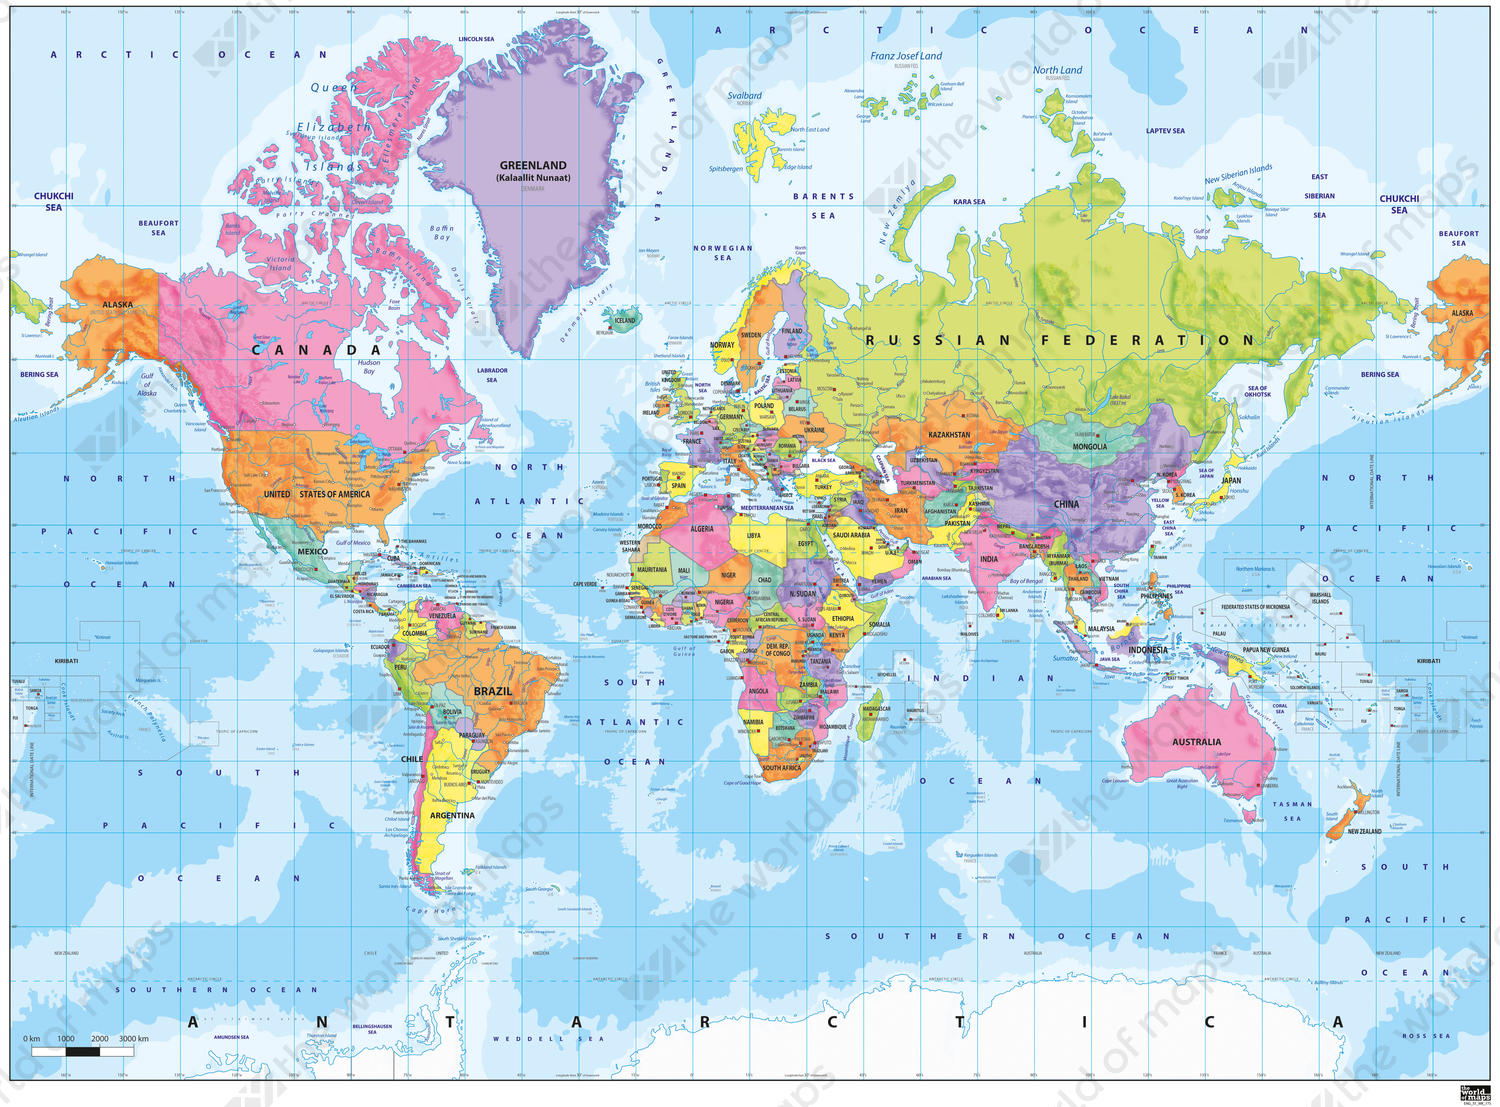 Digital world map political 775 the world of maps political world map colourful gumiabroncs Choice Image